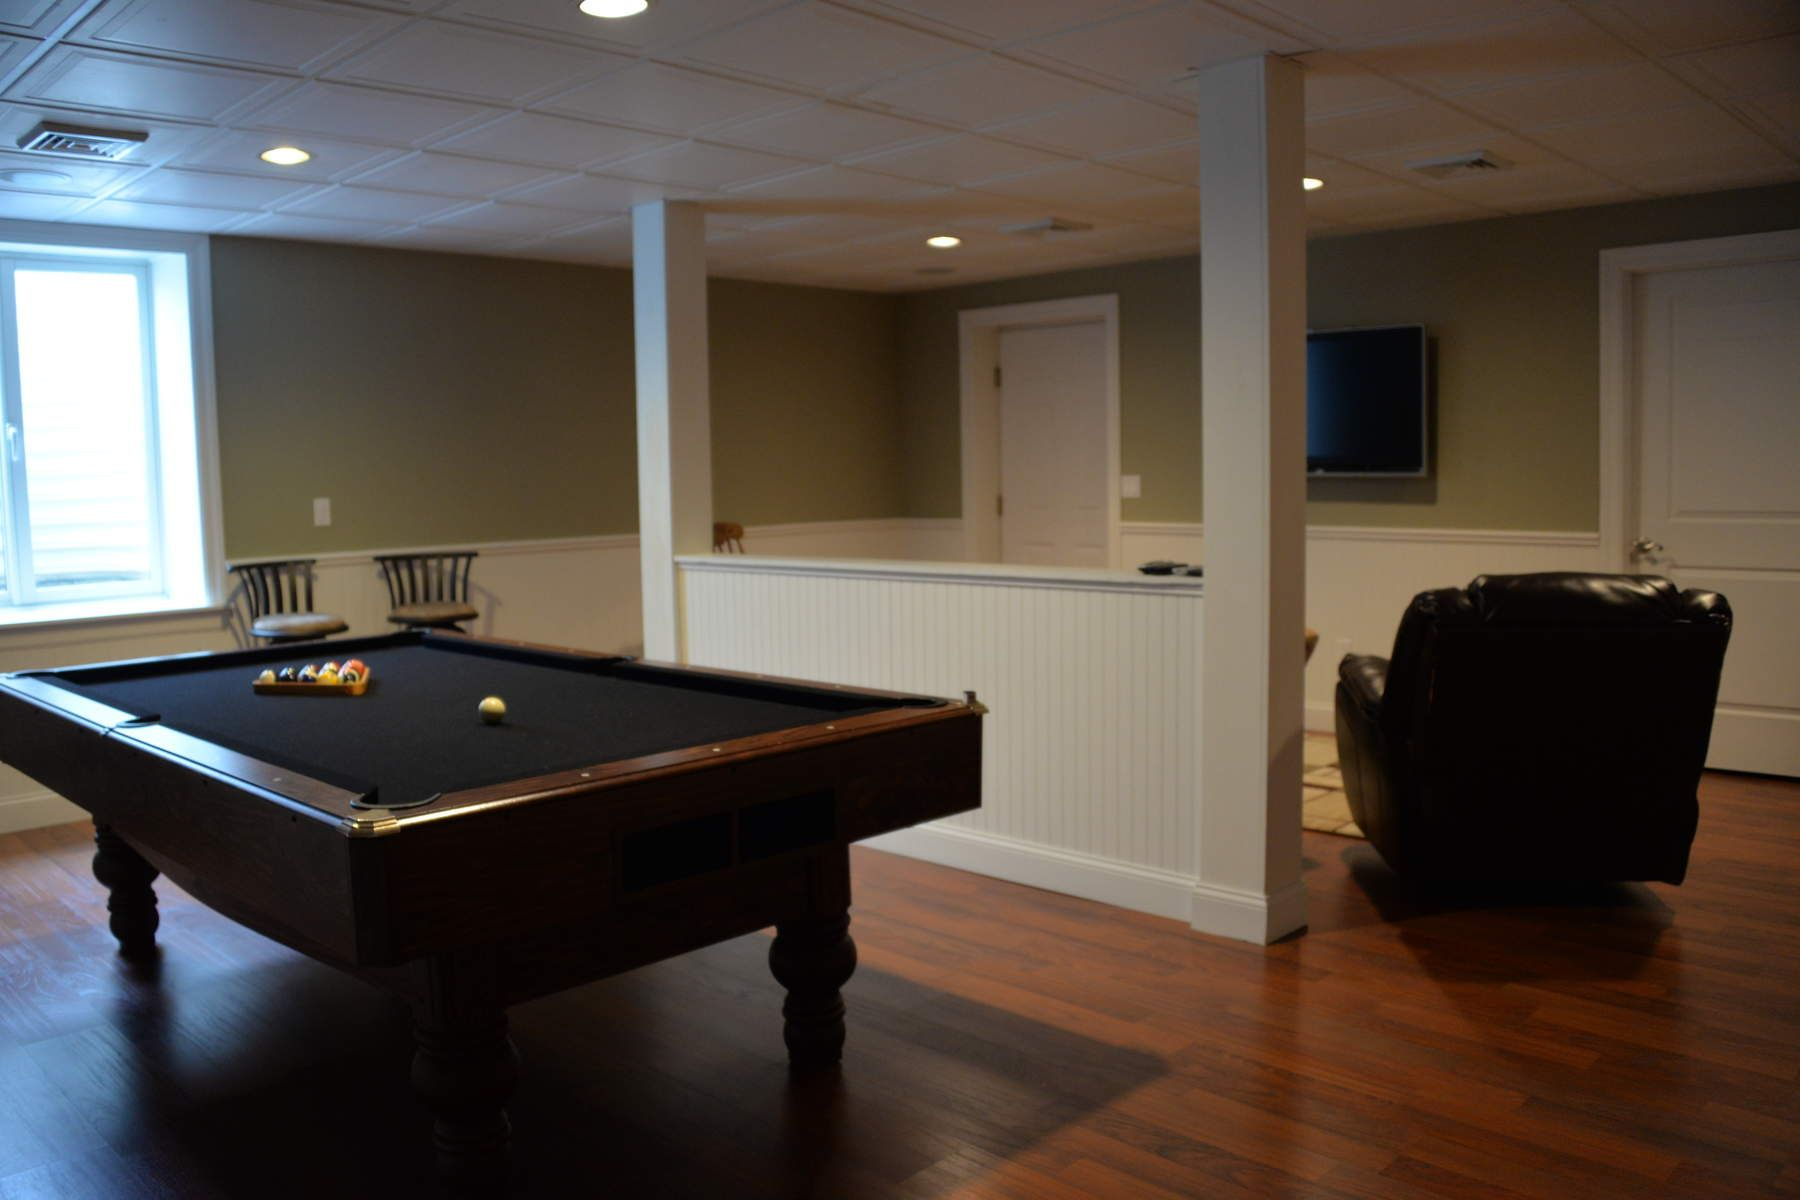 Additional photo for property listing at Water Mill North 896 Deerfield Rd Water Mill, New York 11976 United States